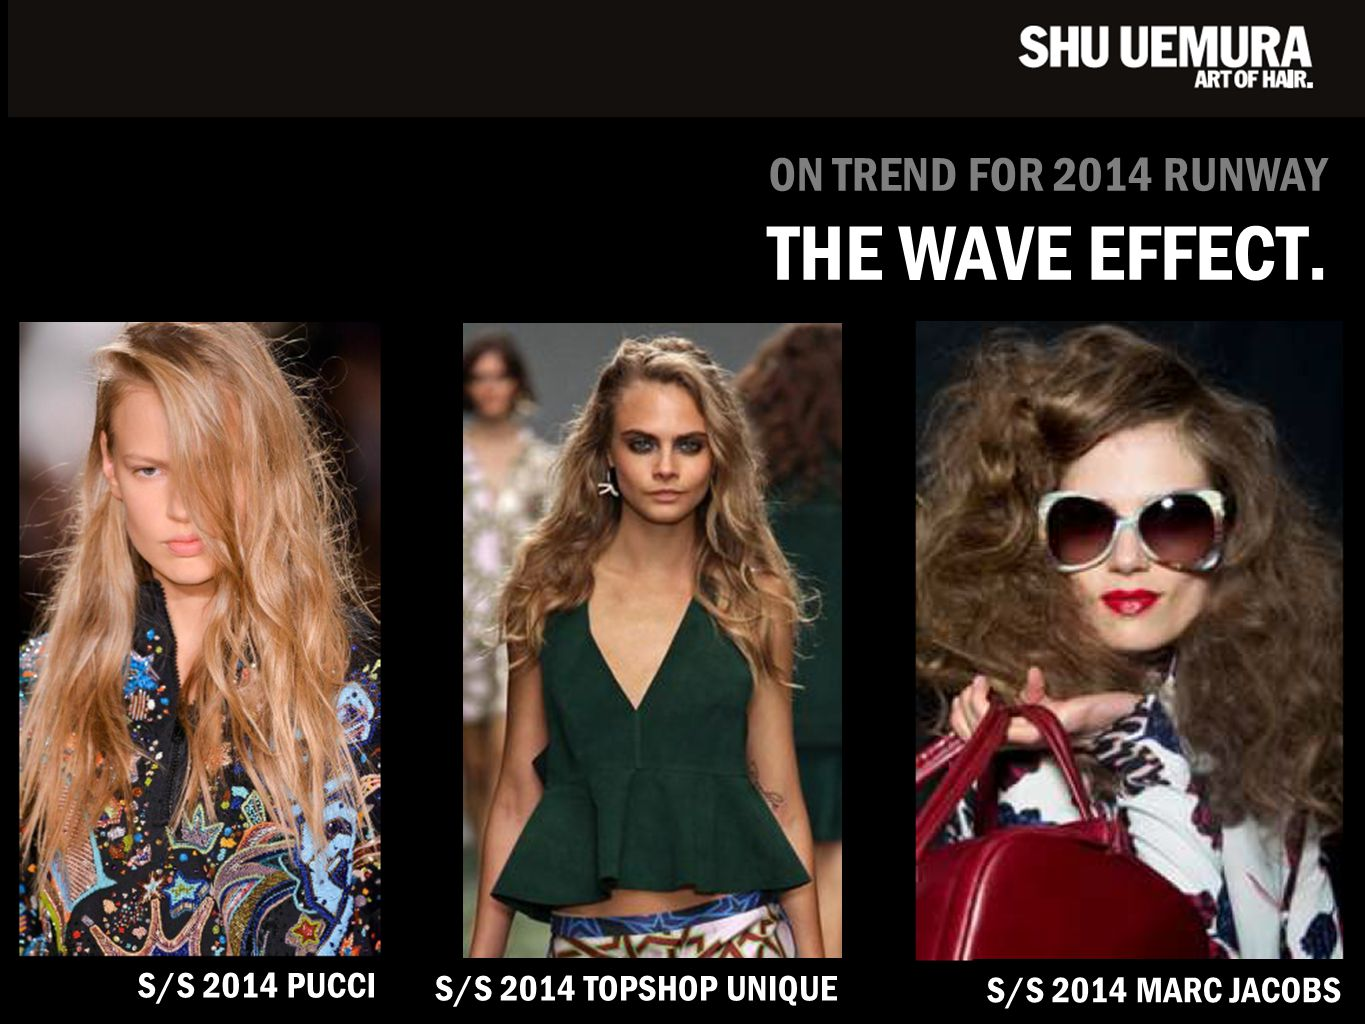 S/S 2014 PUCCI ON TREND FOR 2014 RUNWAY THE WAVE EFFECT. S/S 2014 TOPSHOP UNIQUE S/S 2014 MARC JACOBS